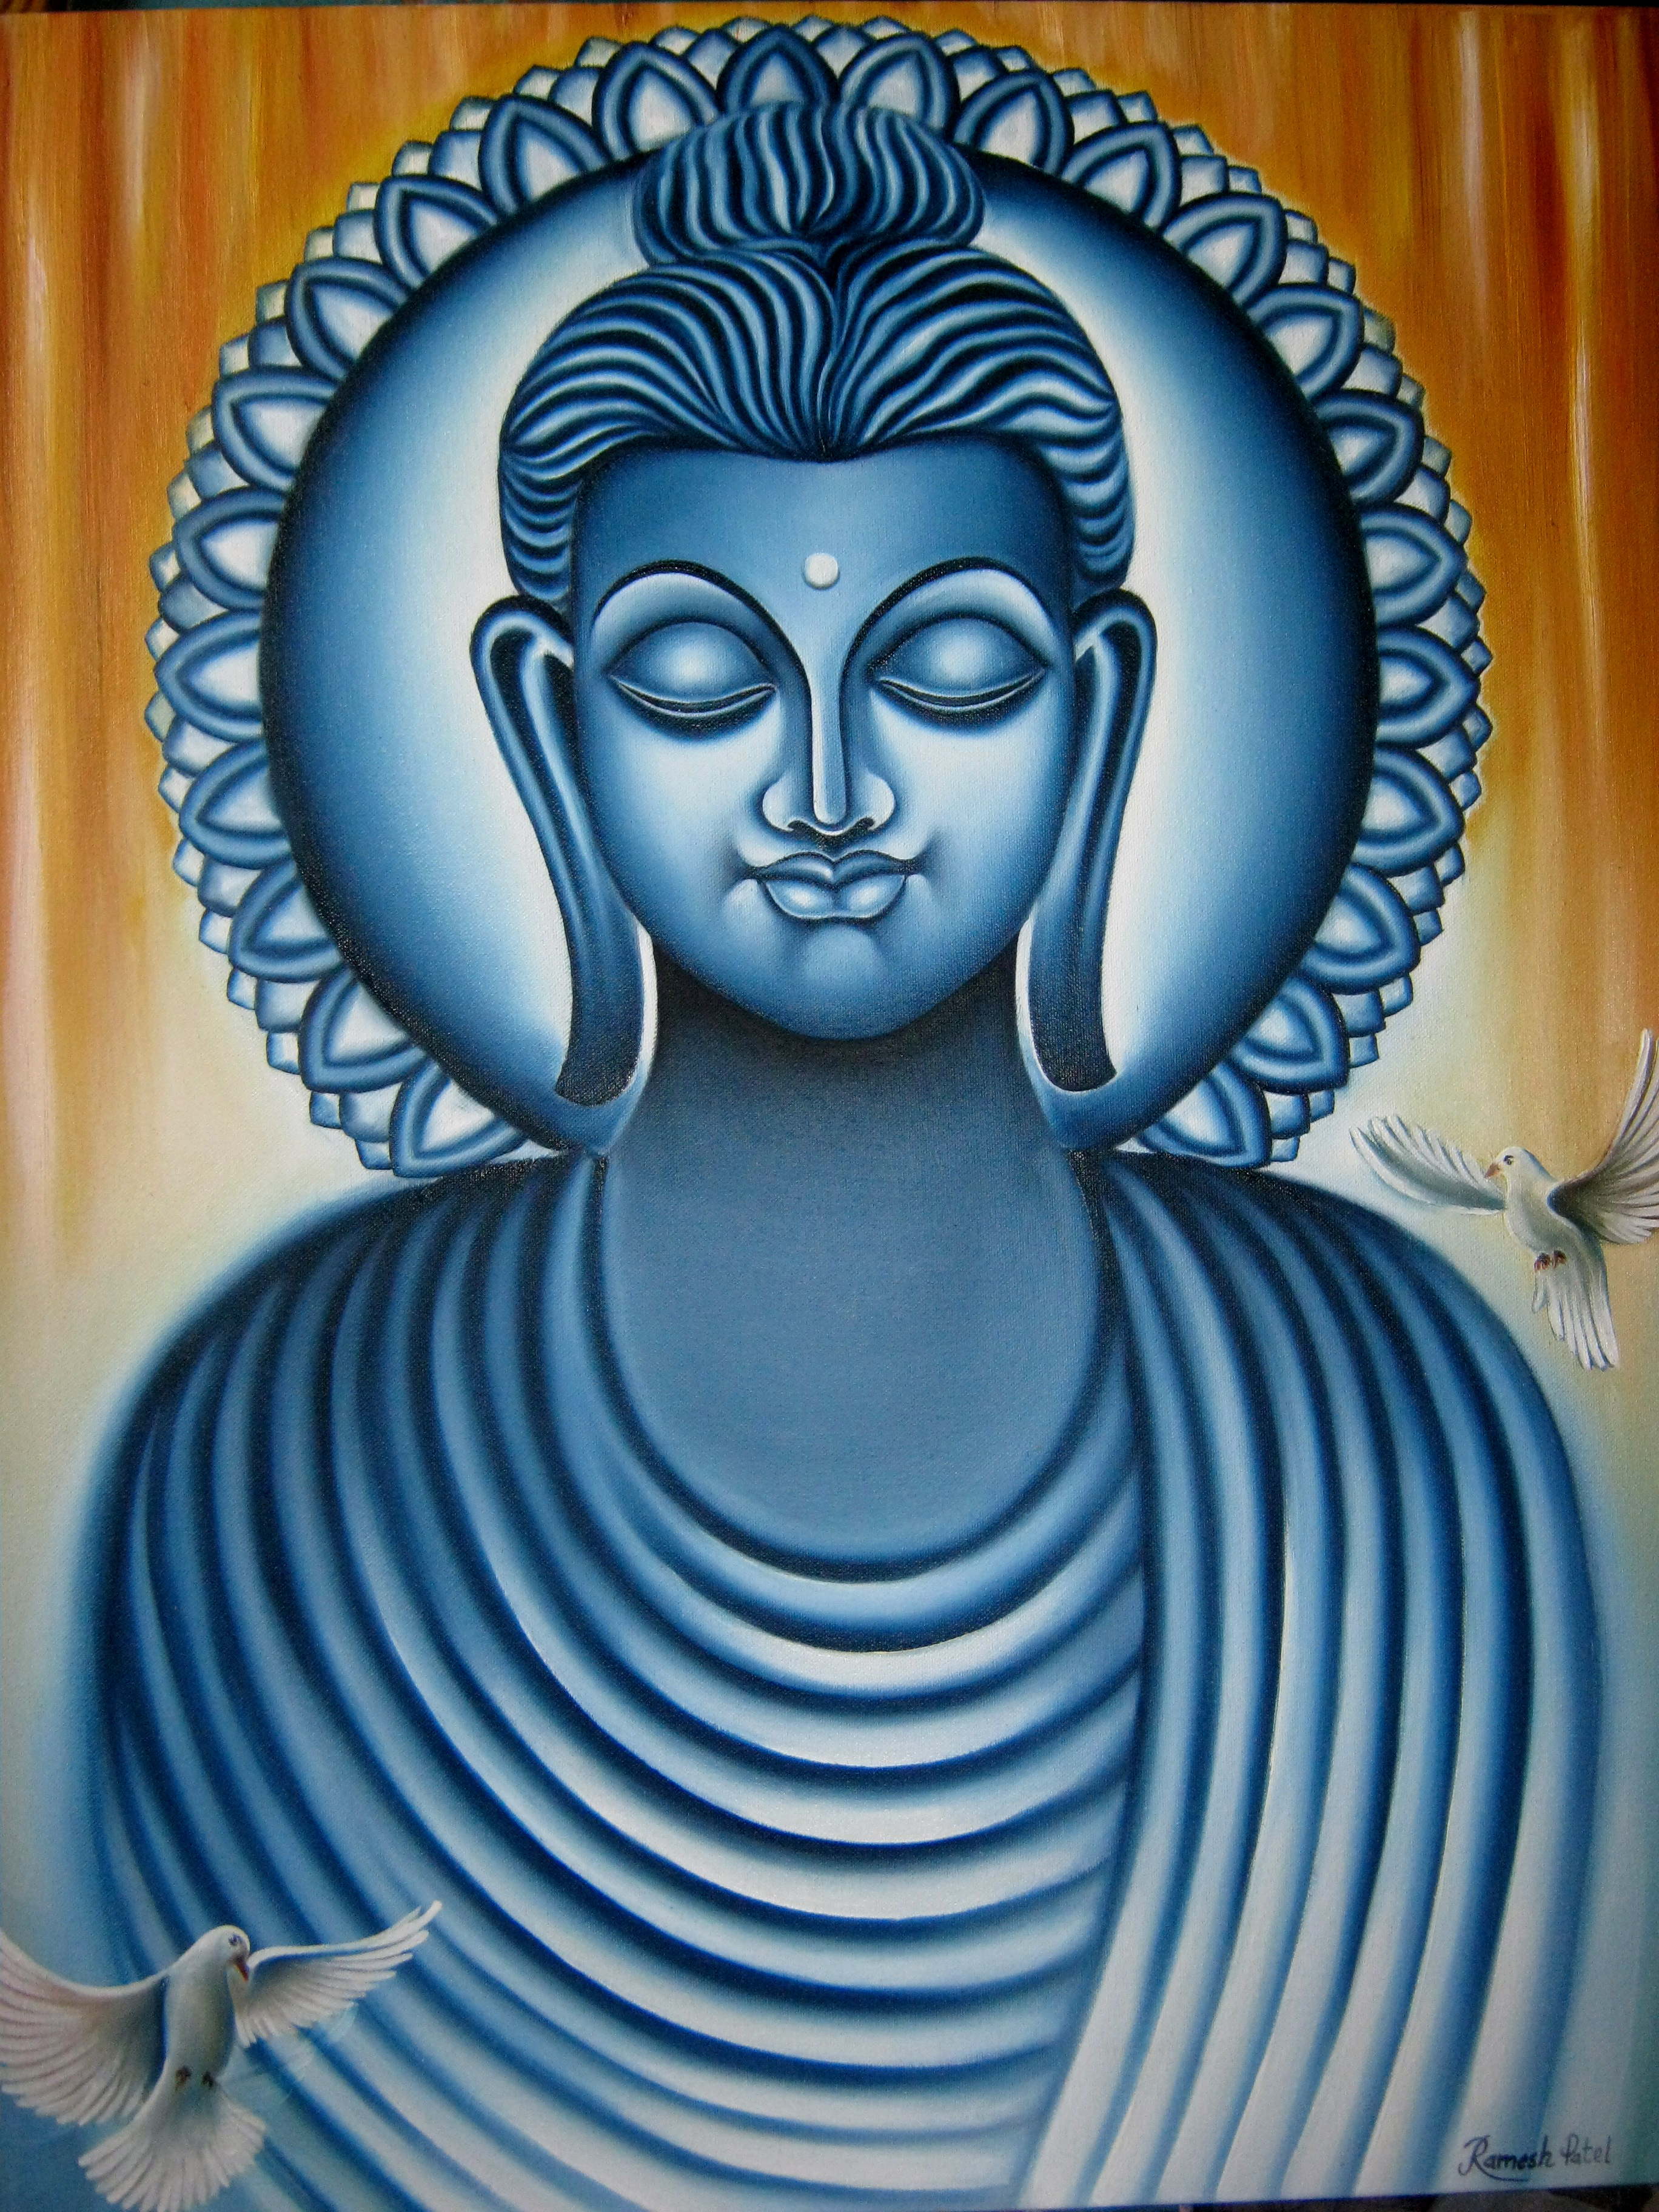 Buy Painting Lord Buddha Painting Artwork No 7595 by ...